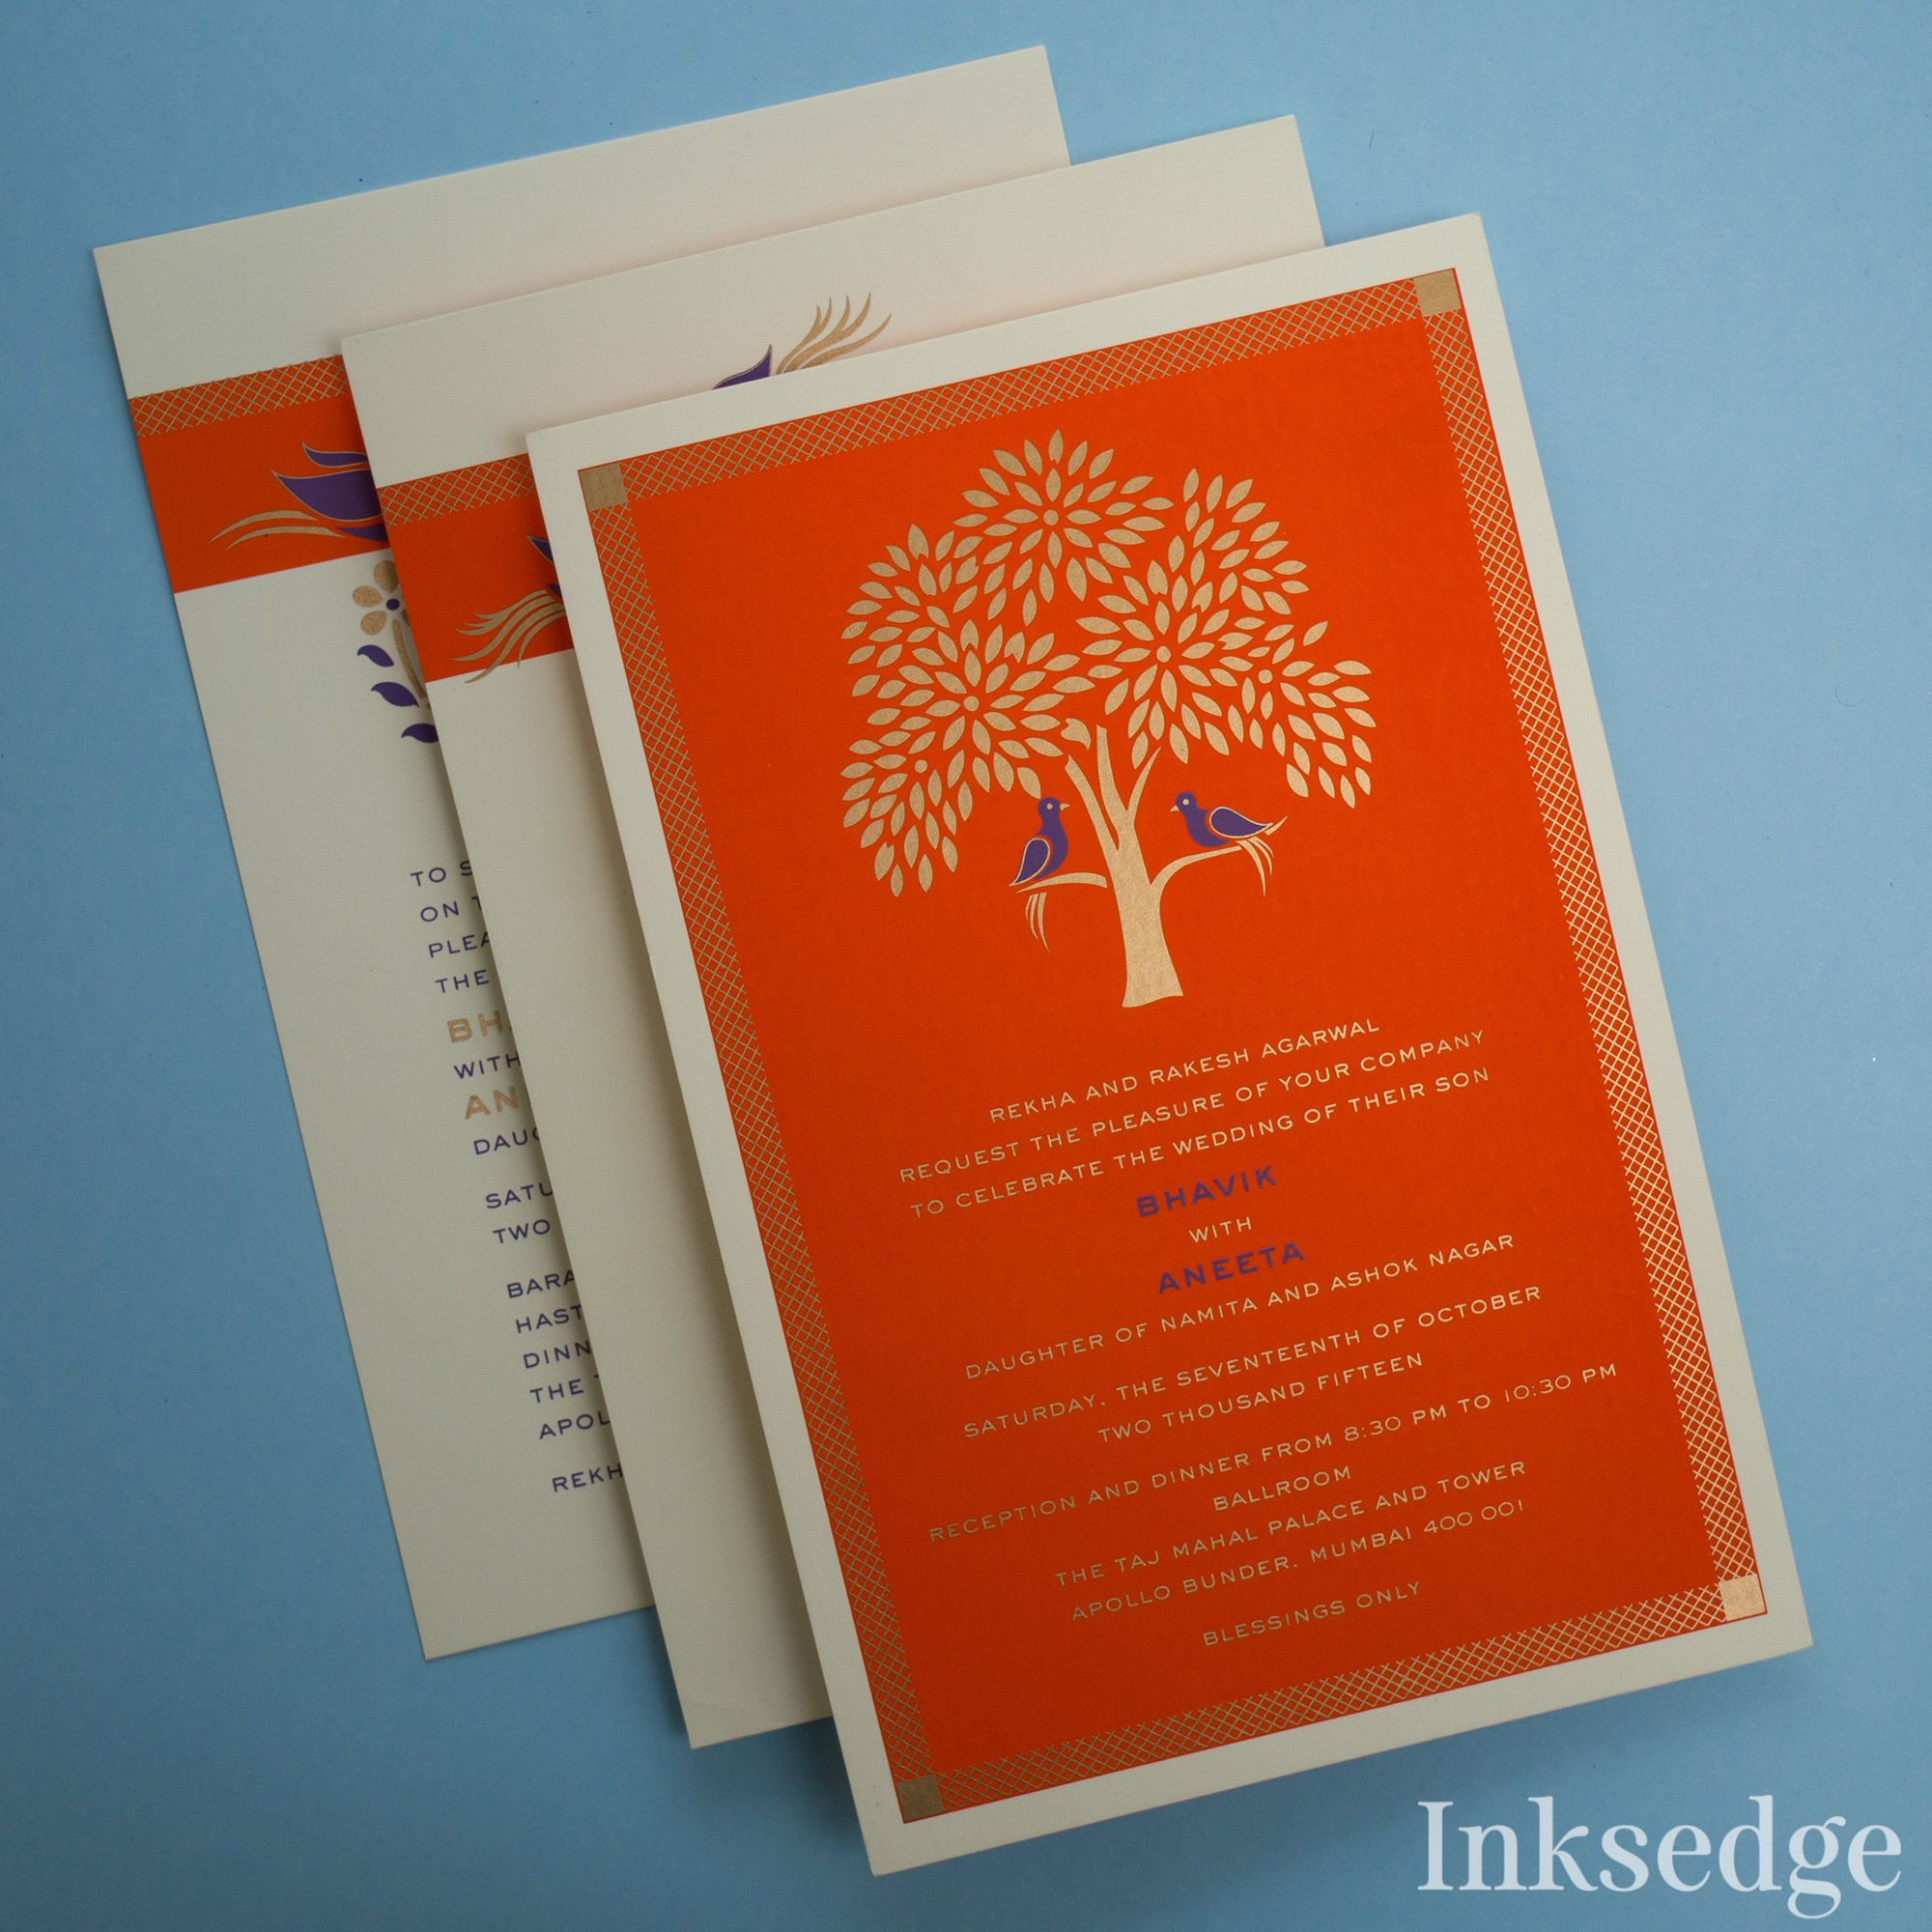 inksedge #inksedgeweddinginvitations #weddigninvitations ...